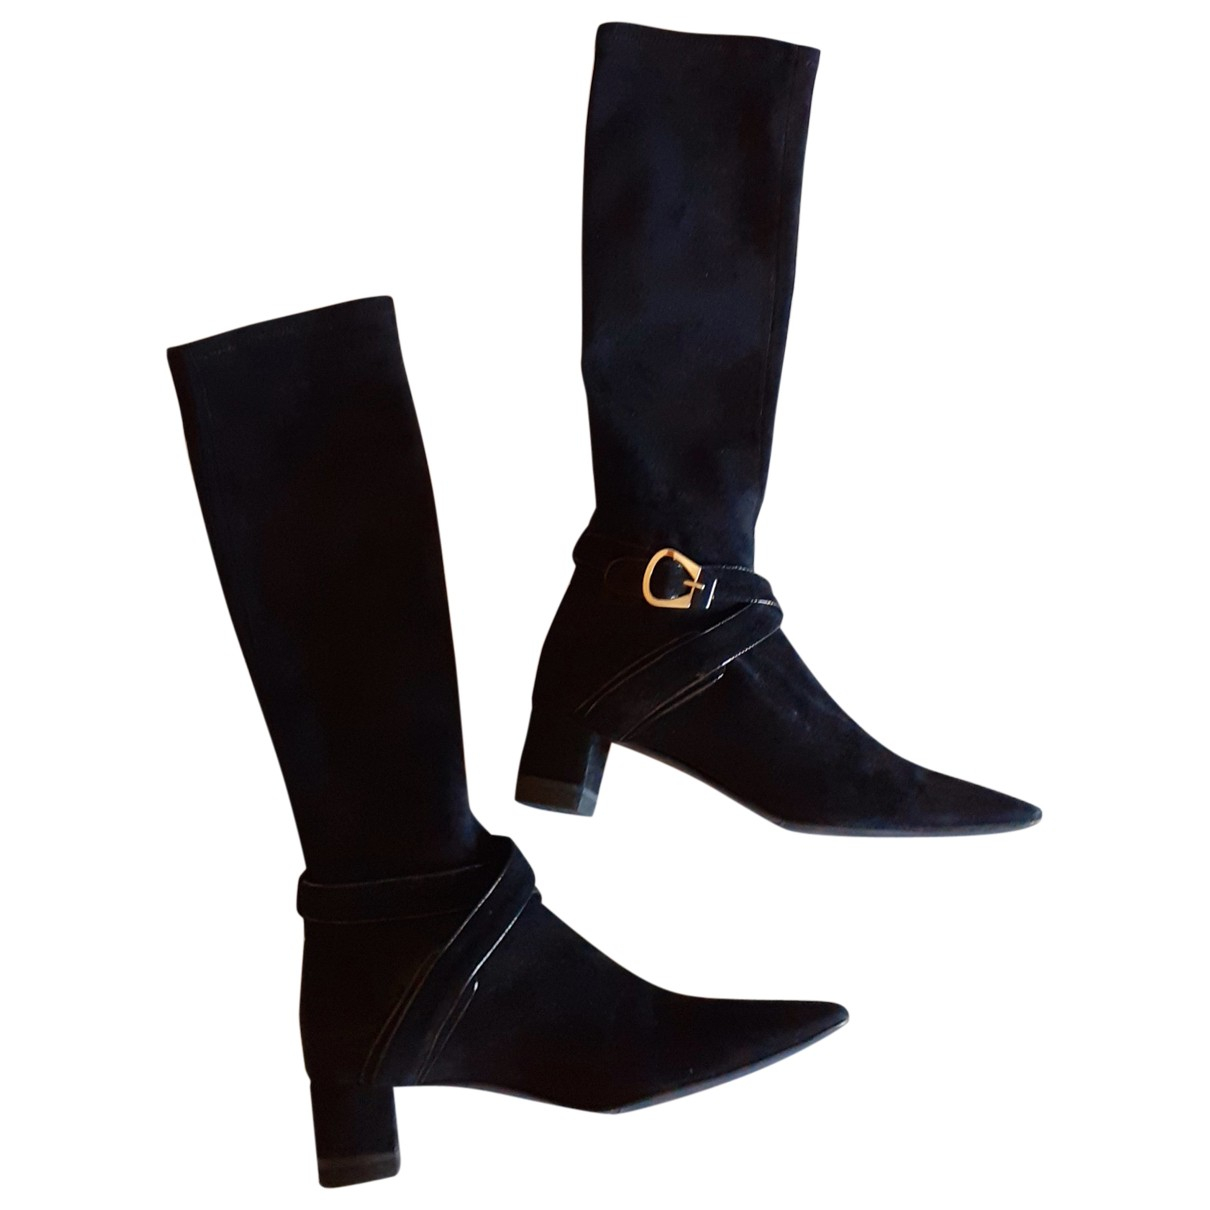 Fratelli Rossetti N Black Suede Boots for Women 39.5 EU